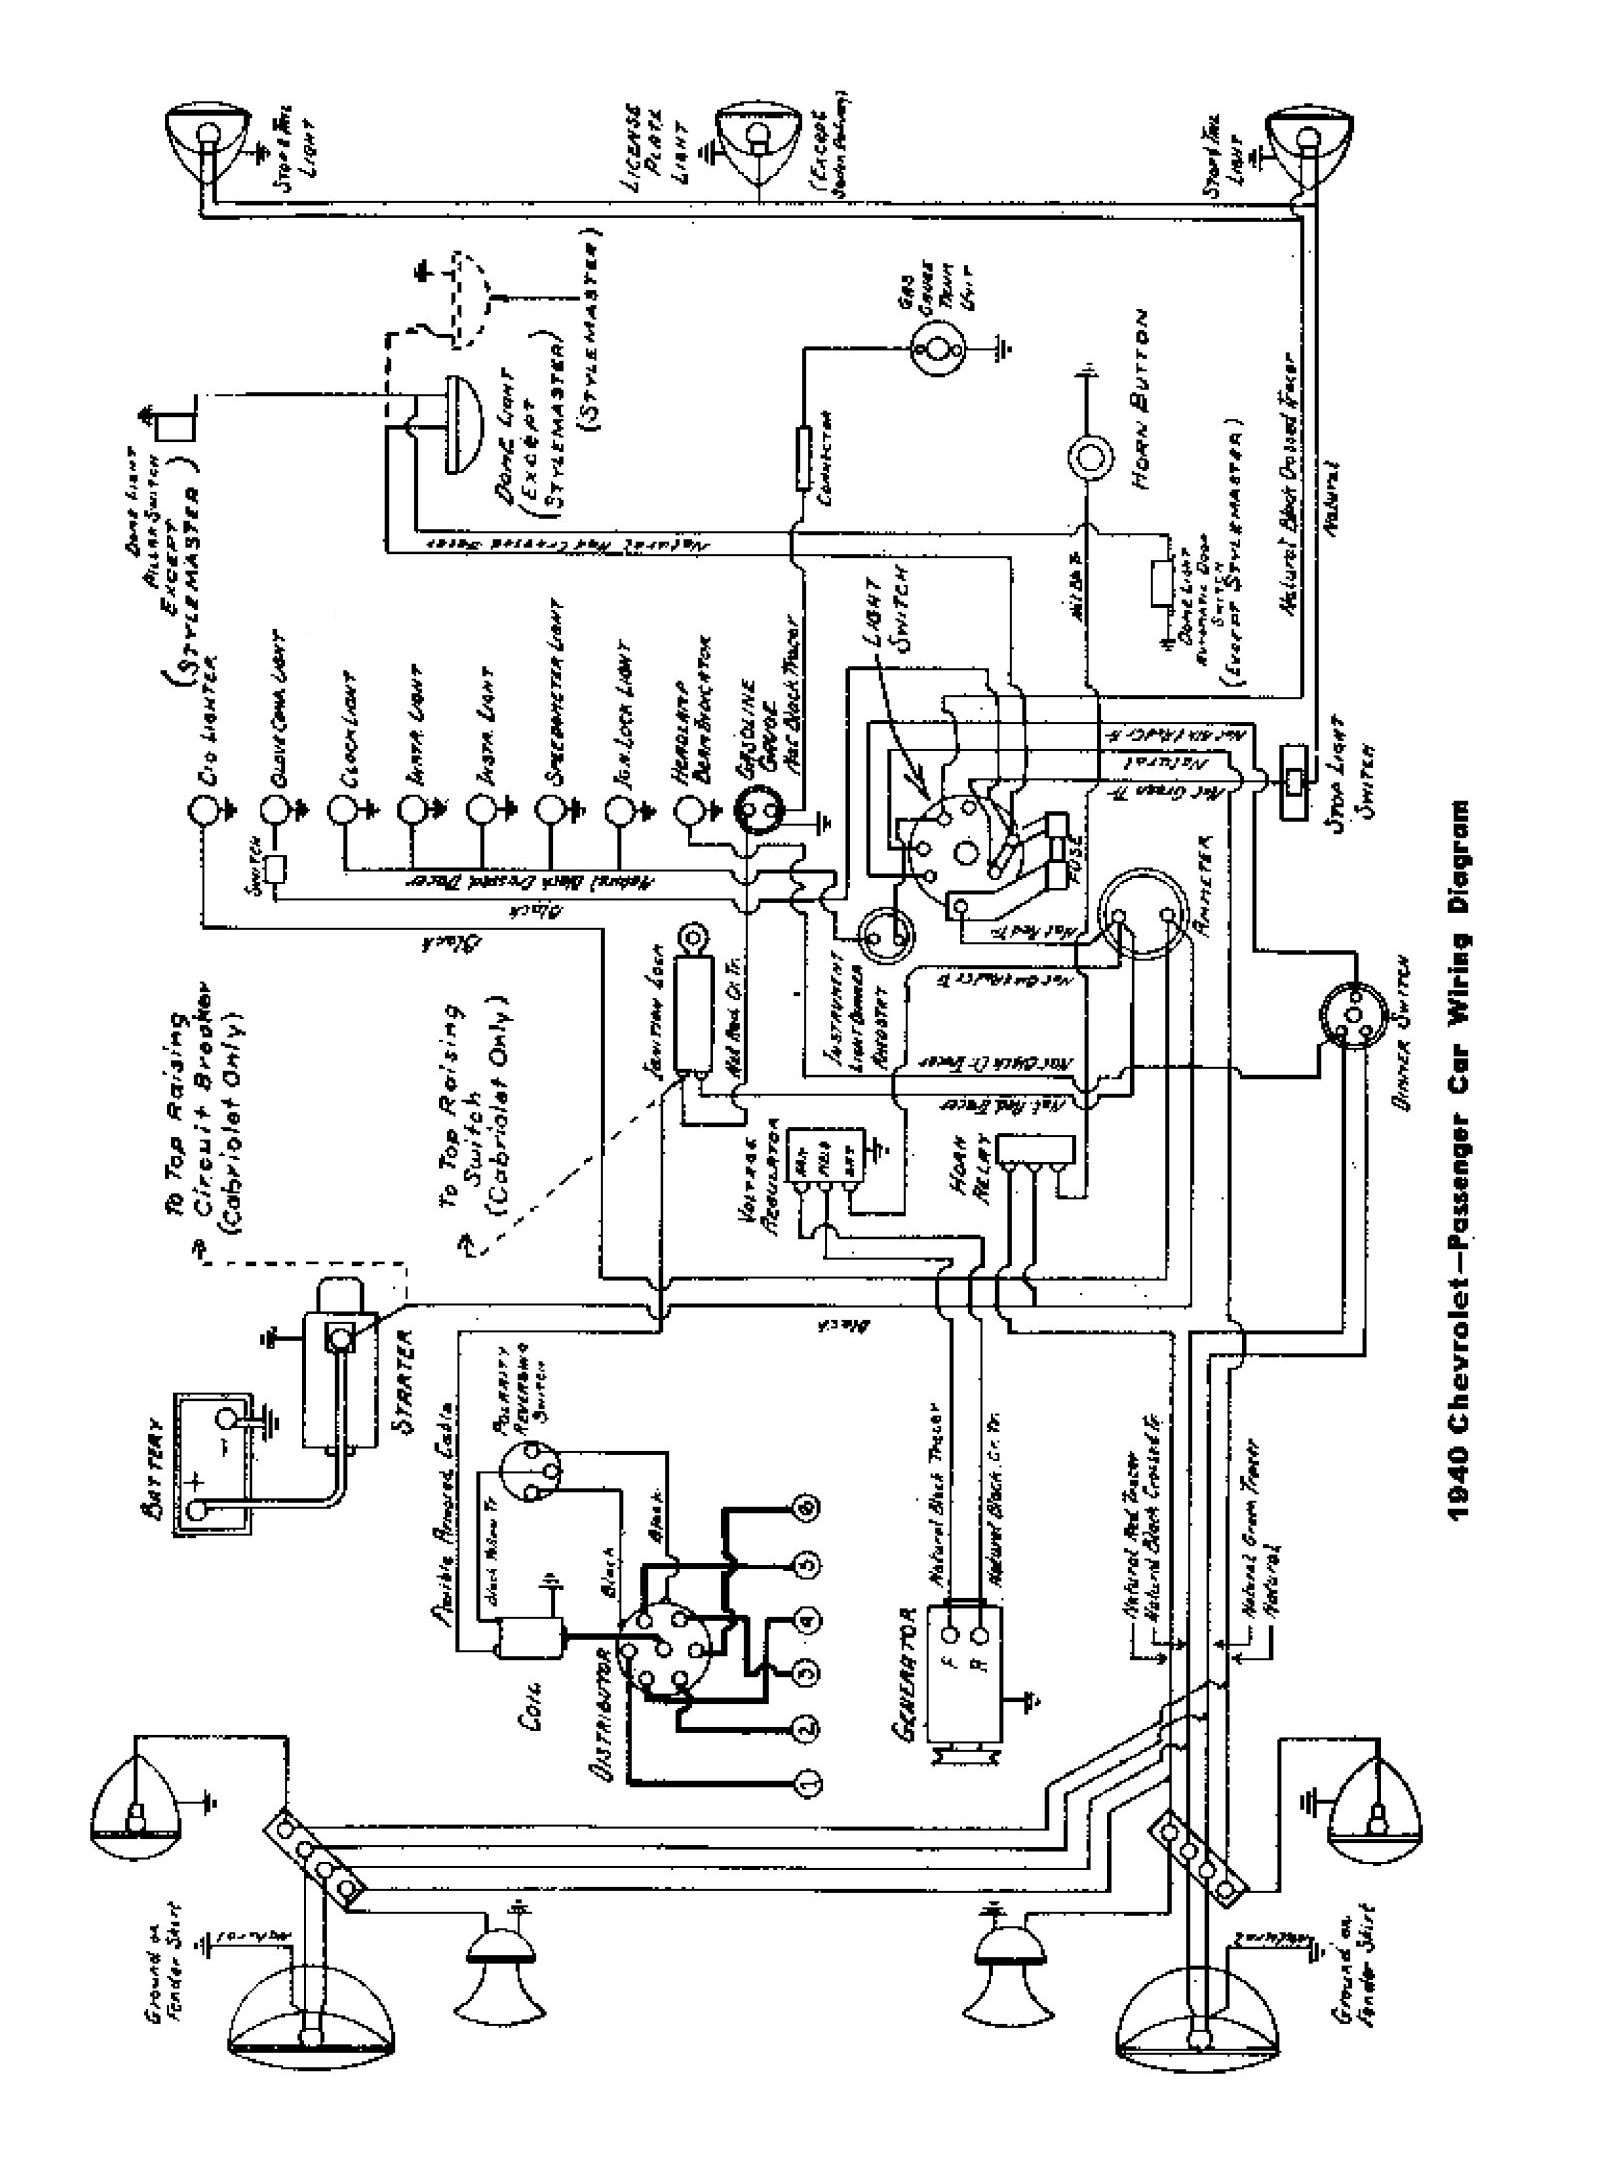 Wiring Diagram Cars Trucks Wiring Diagram Cars Trucks Truck Horn Wiring Wiring Diagrams Cars Trucks Ford Truck Trucks